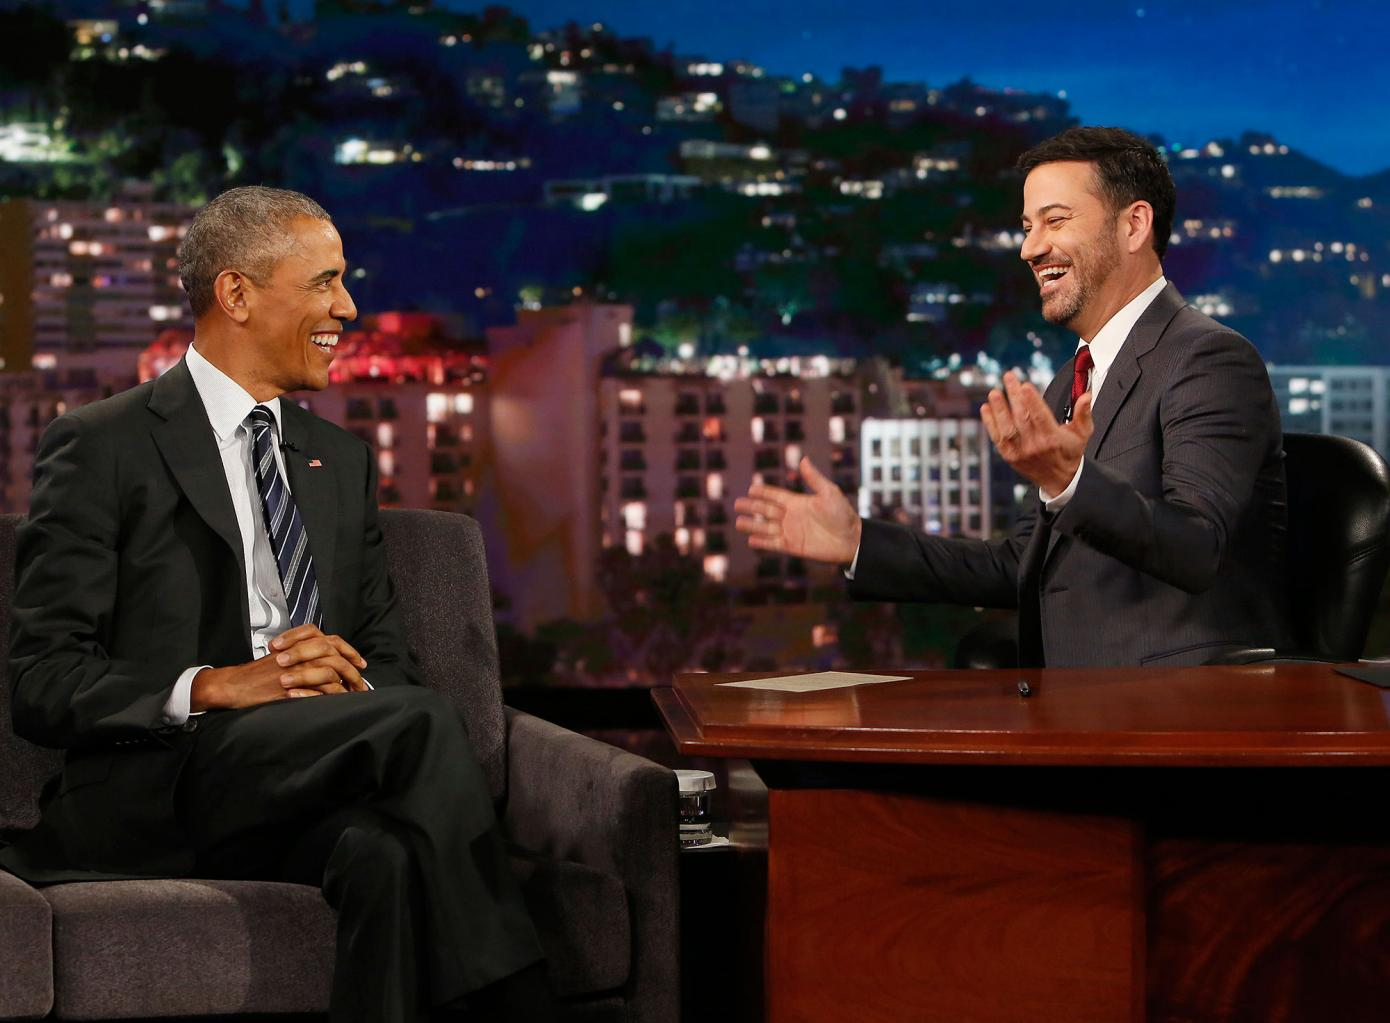 President Obama Says He Laughs 'Most of the Time' At Donald Trump